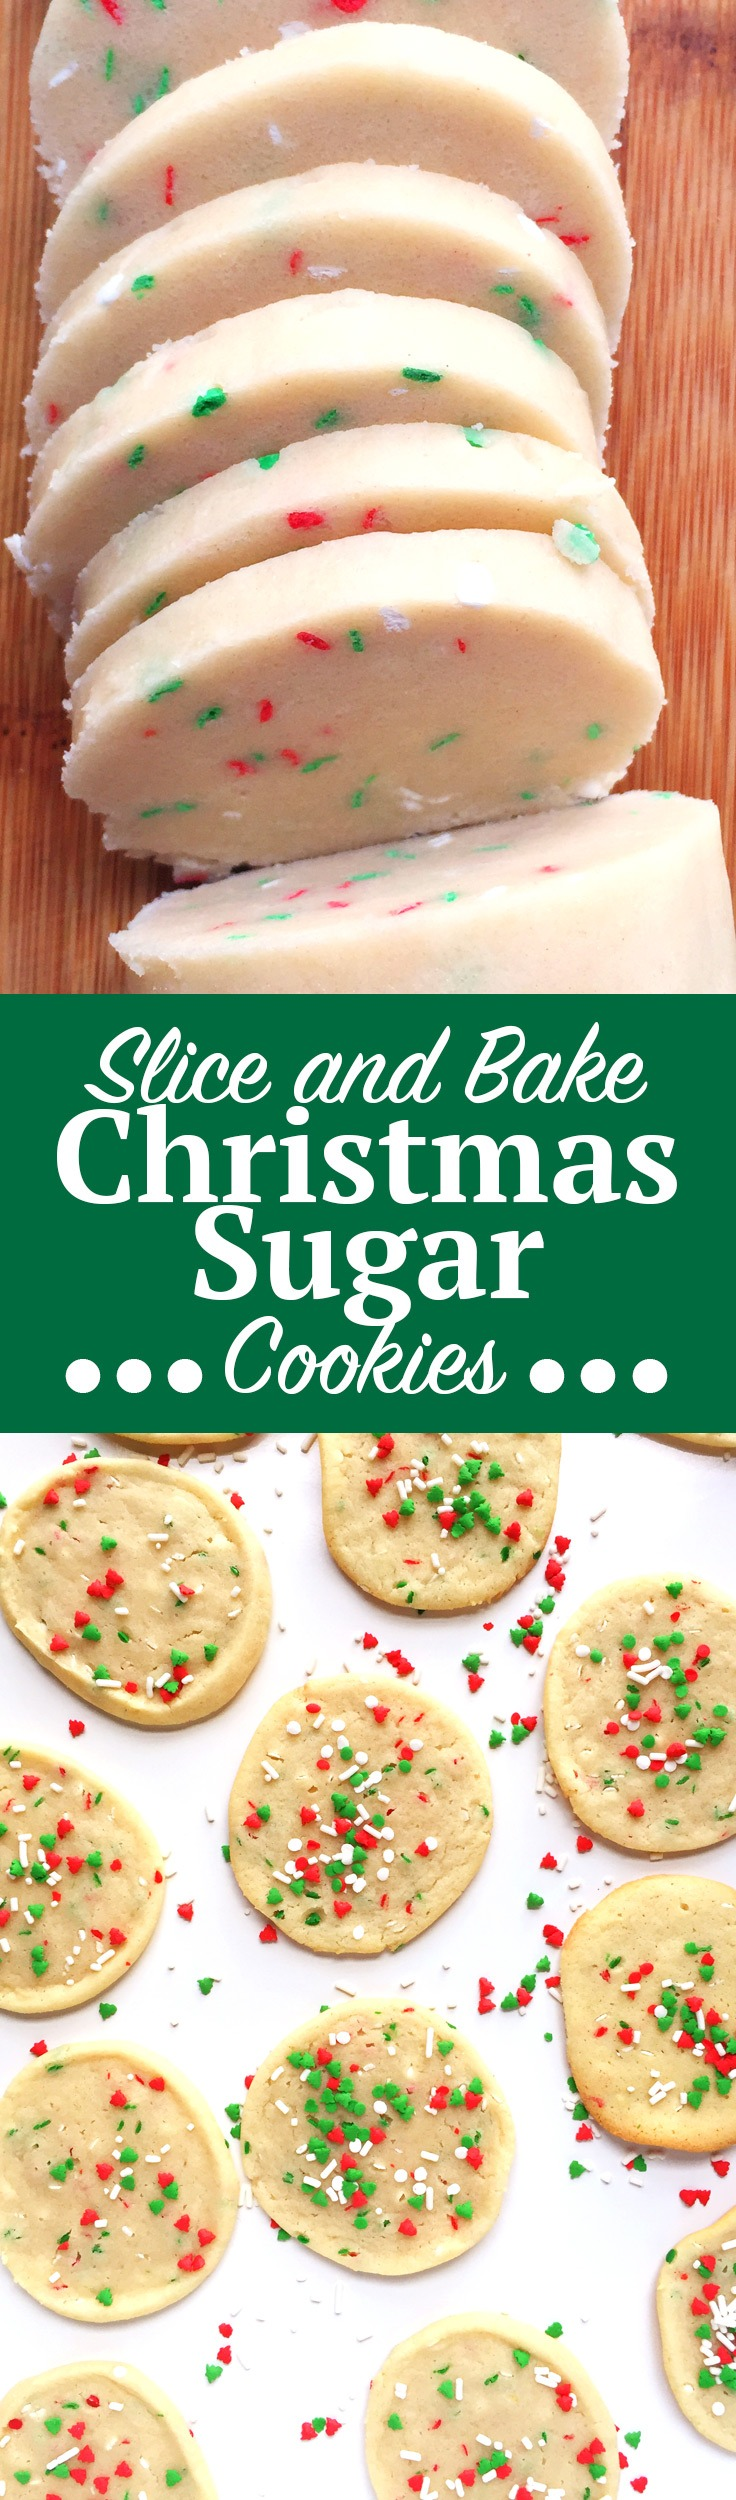 Slice And Bake Christmas Sugar Cookies